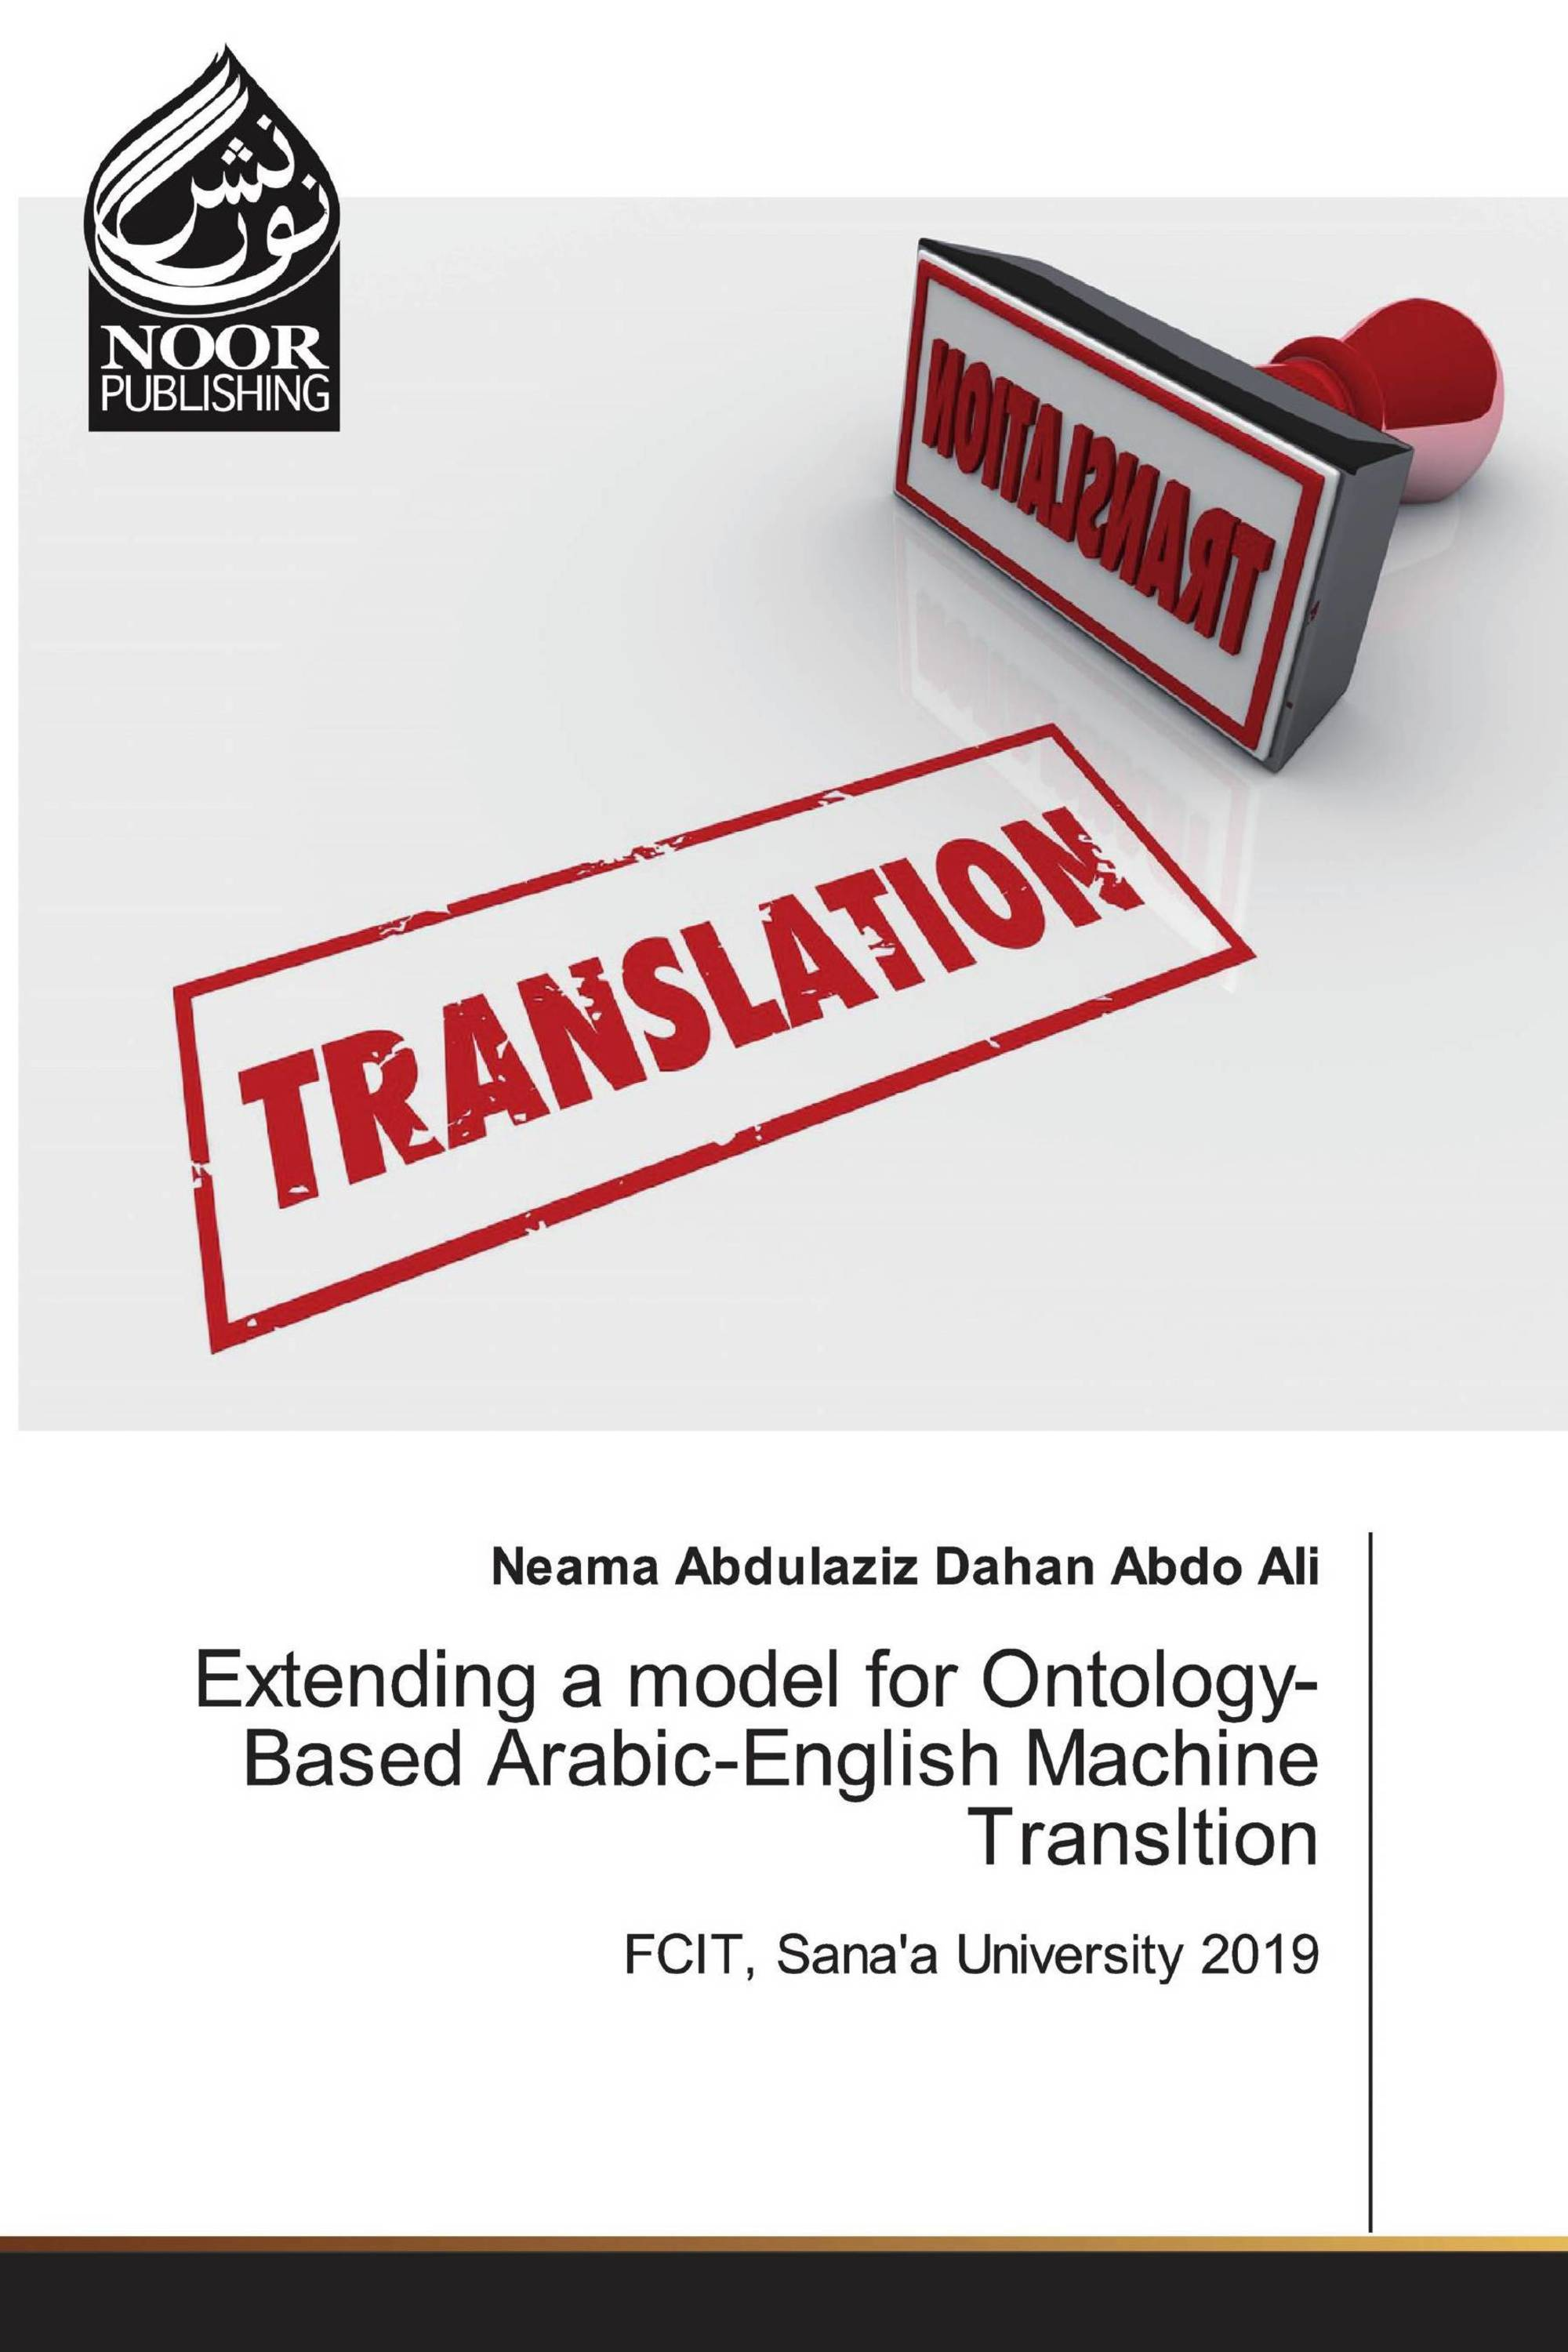 Extending a model for Ontology-Based Arabic-English Machine Transltion